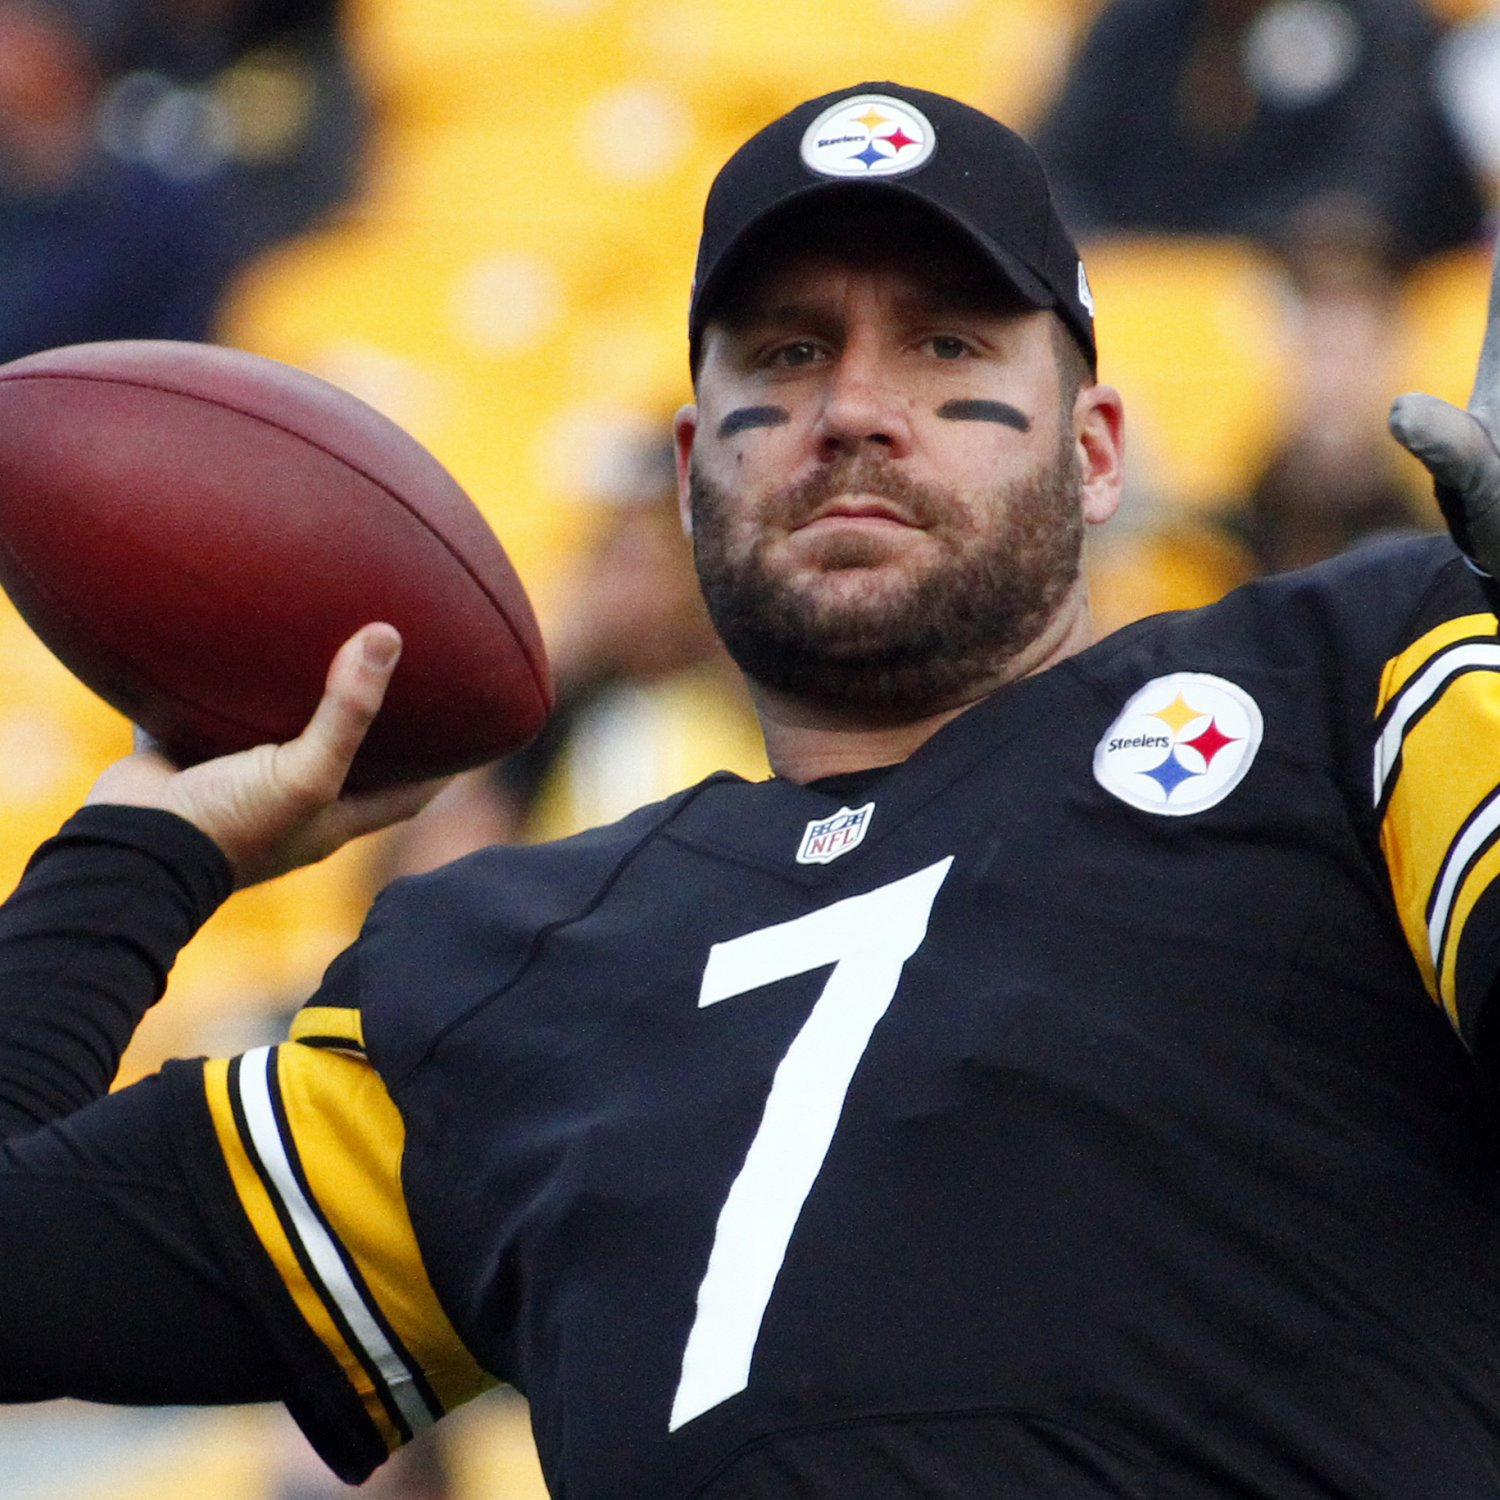 What To Expect From Ben Roethlisberger, Pittsburgh